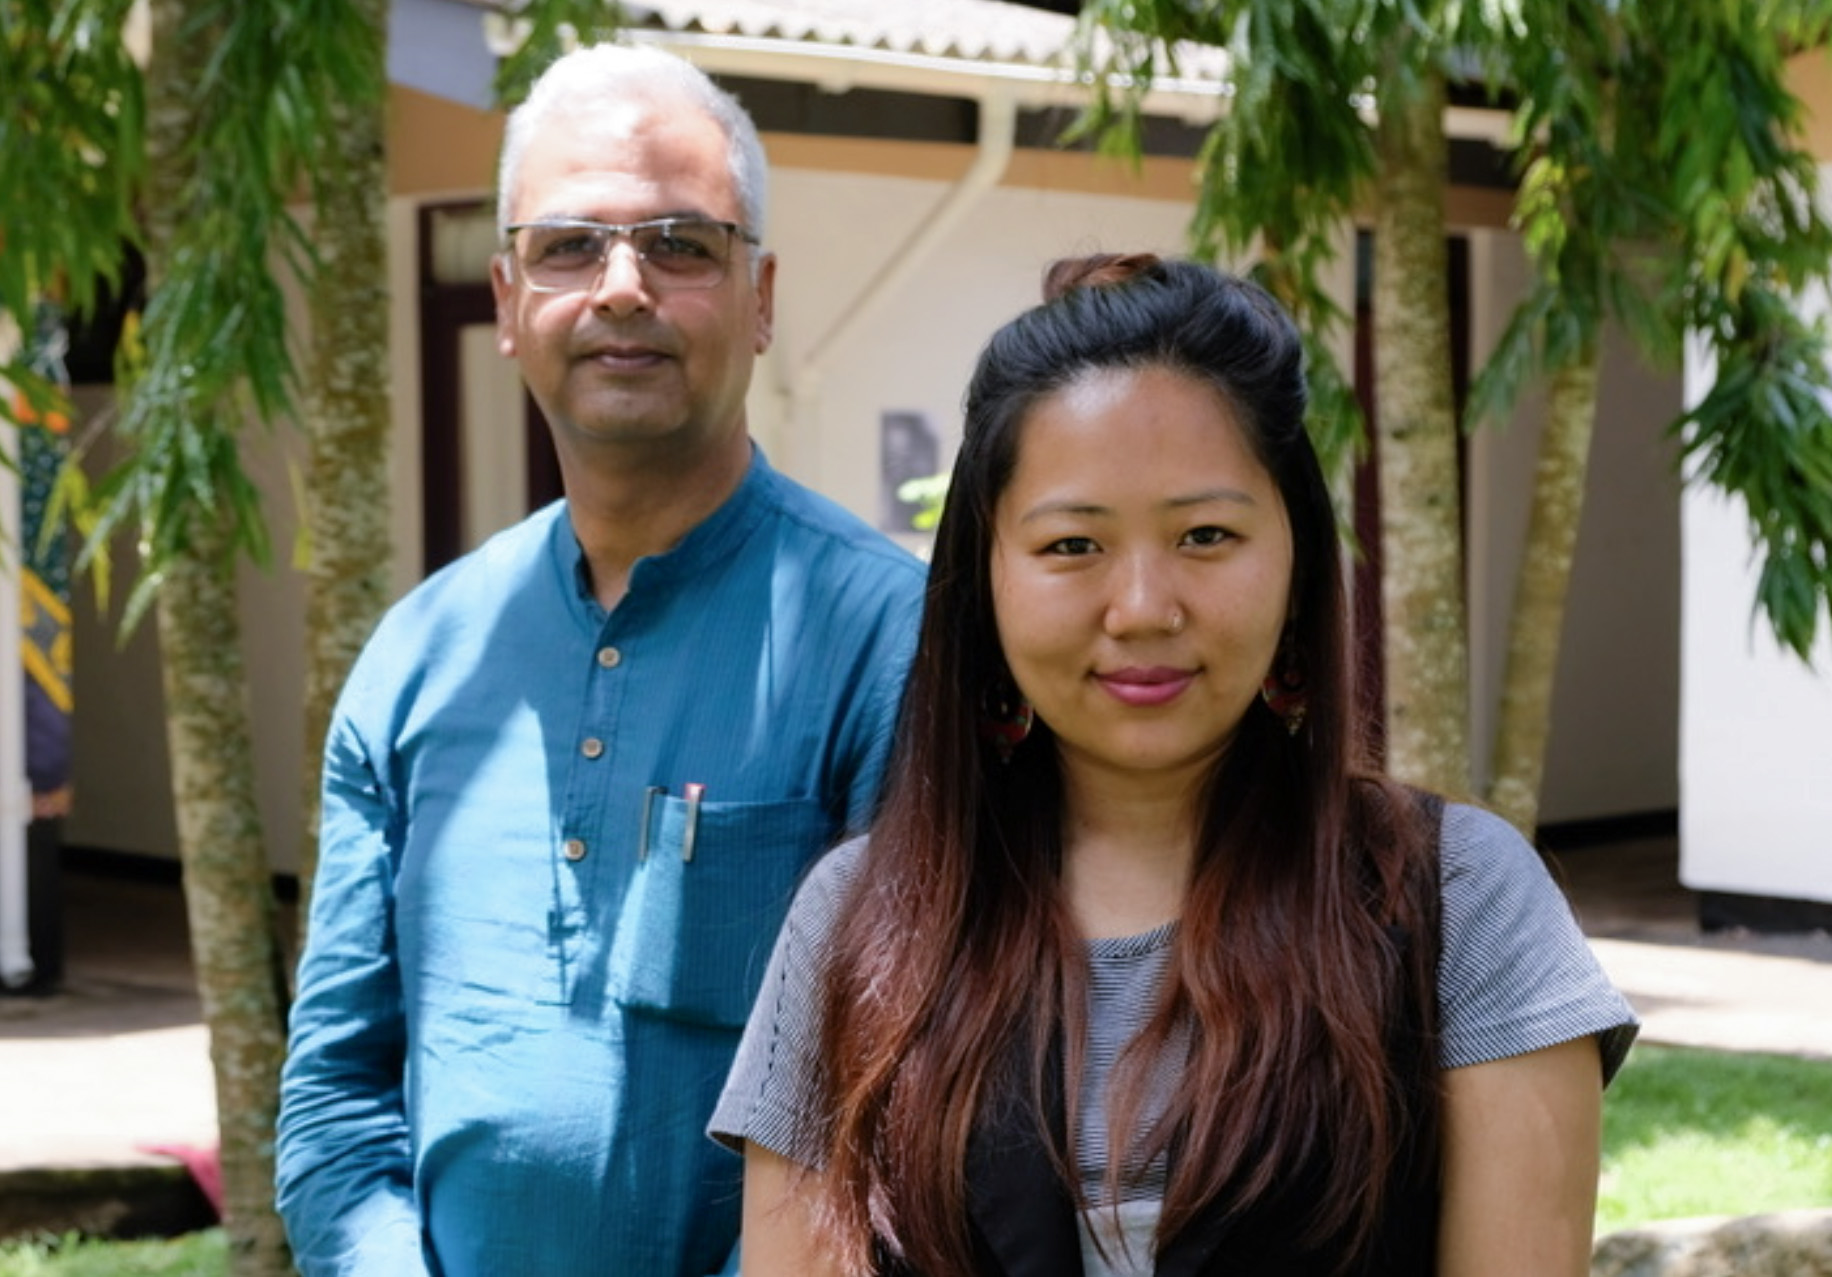 Kiran Nepal and Bhrikuti Rai from CIJ Nepal